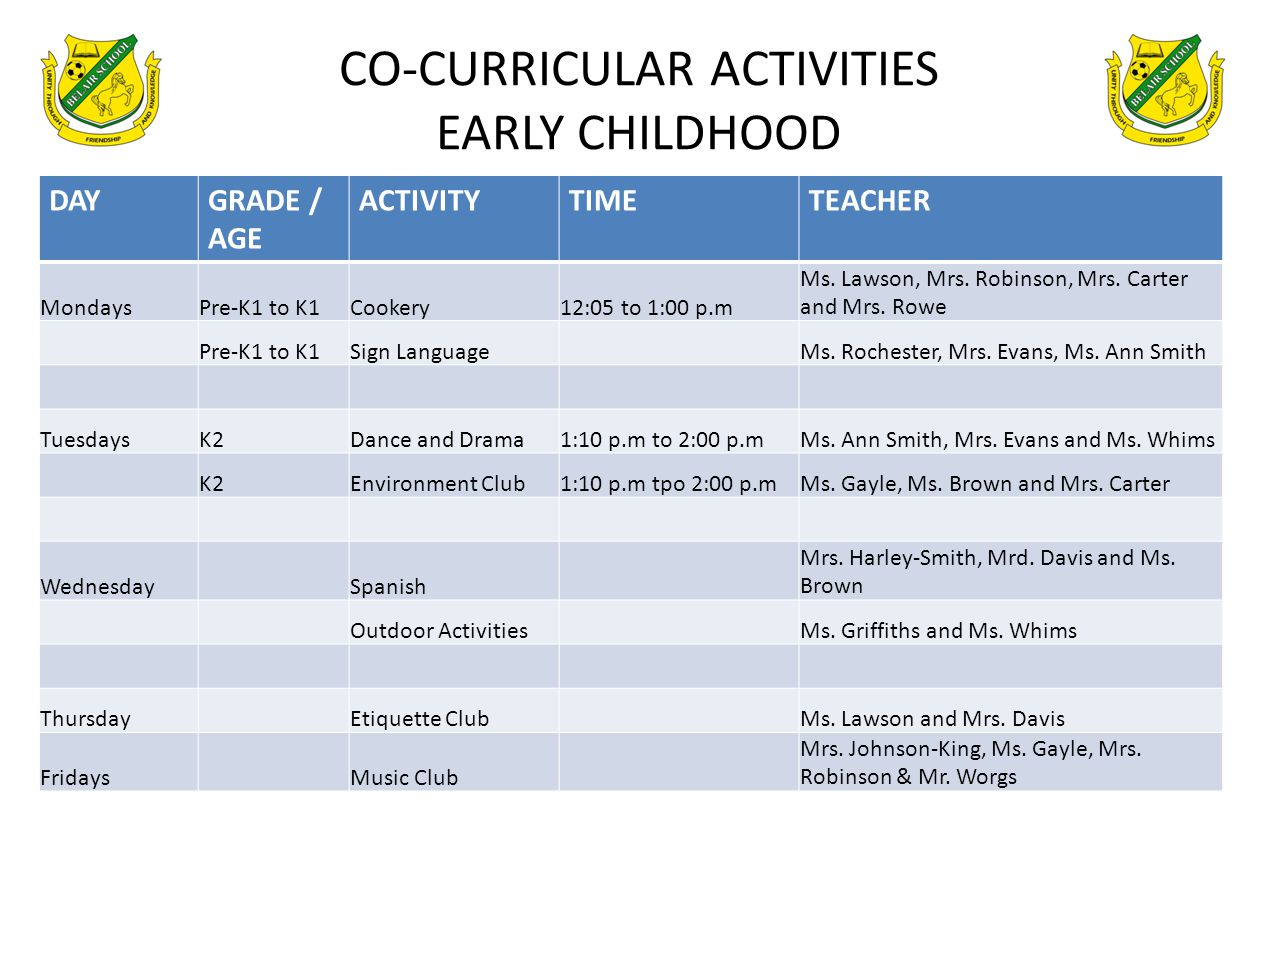 CO-CURRICULAR ACTIVITIES EARLY CHILDHOOD